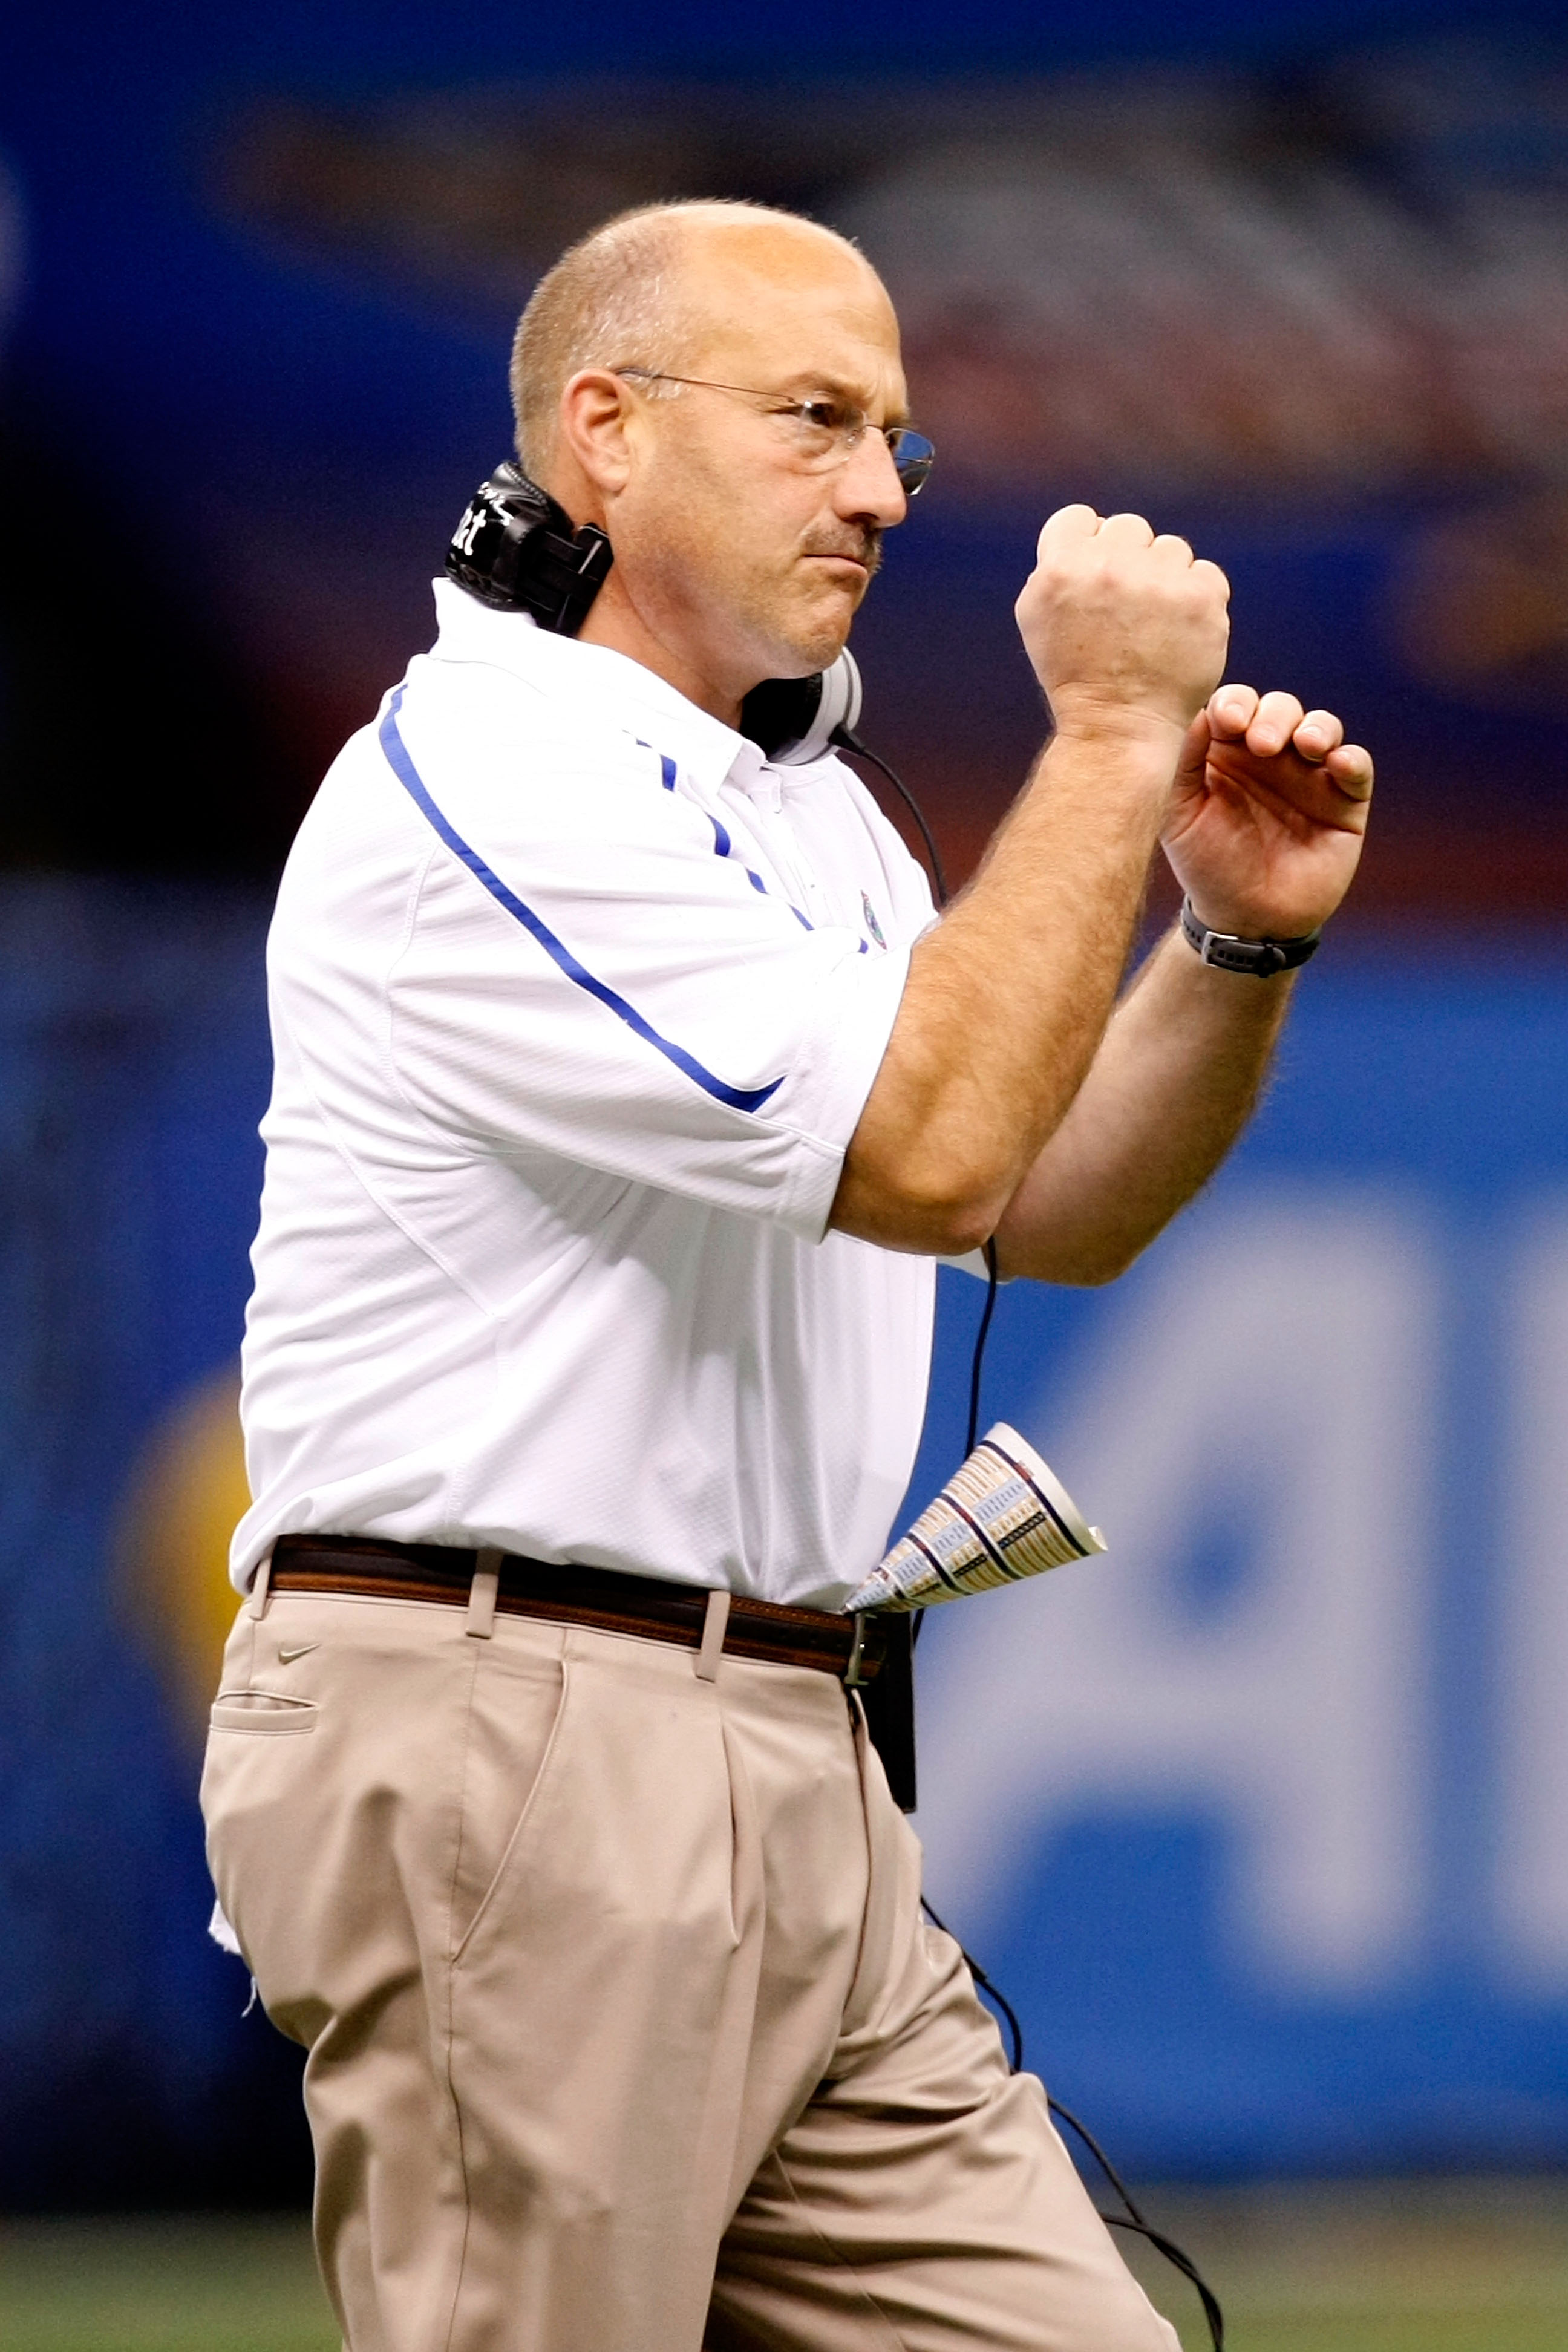 NEW ORLEANS - JANUARY 01:  Offensive coordinator and interim head coach Steve Addazio of the Florida Gators celebrates a touchdown from the sidelines during the Allstate Sugar Bowl against the Cincinnati Bearcats at the Louisana Superdome on January 1, 20